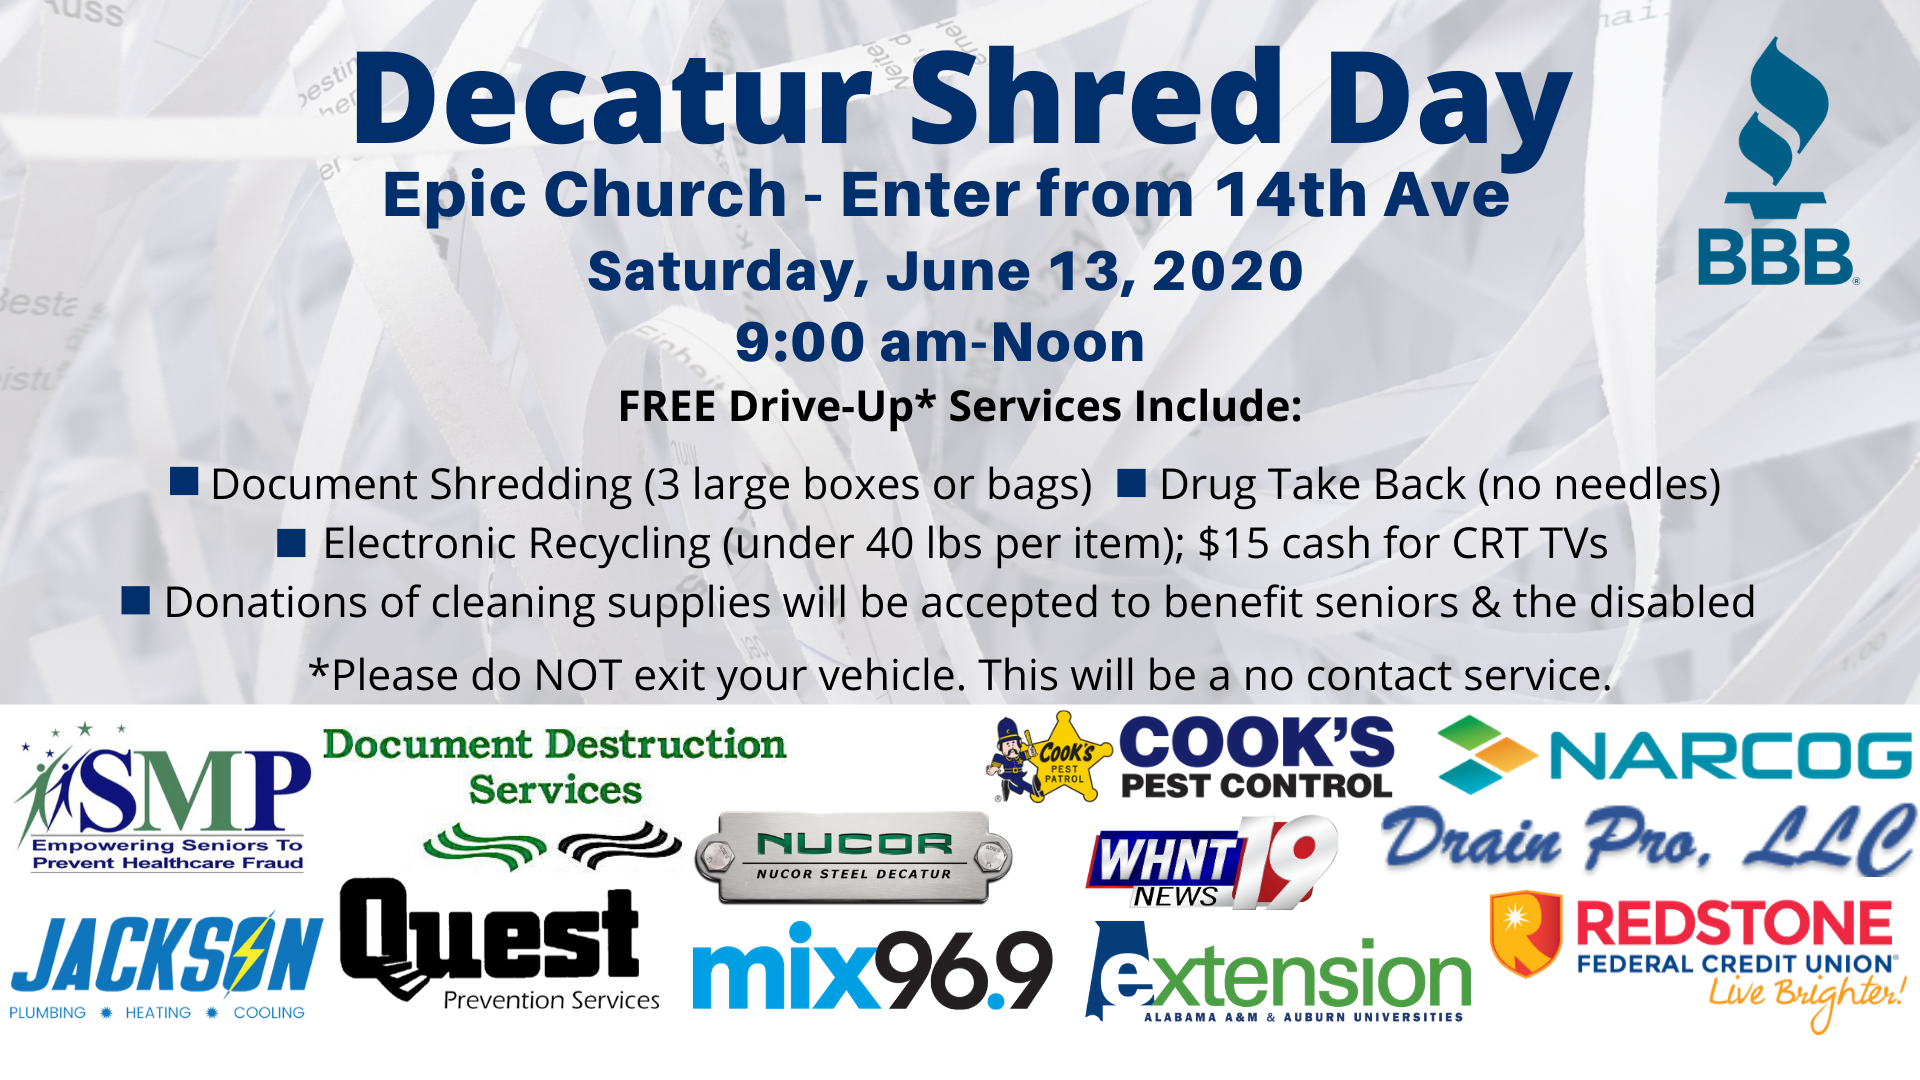 Shred Day Decatur FB graphic